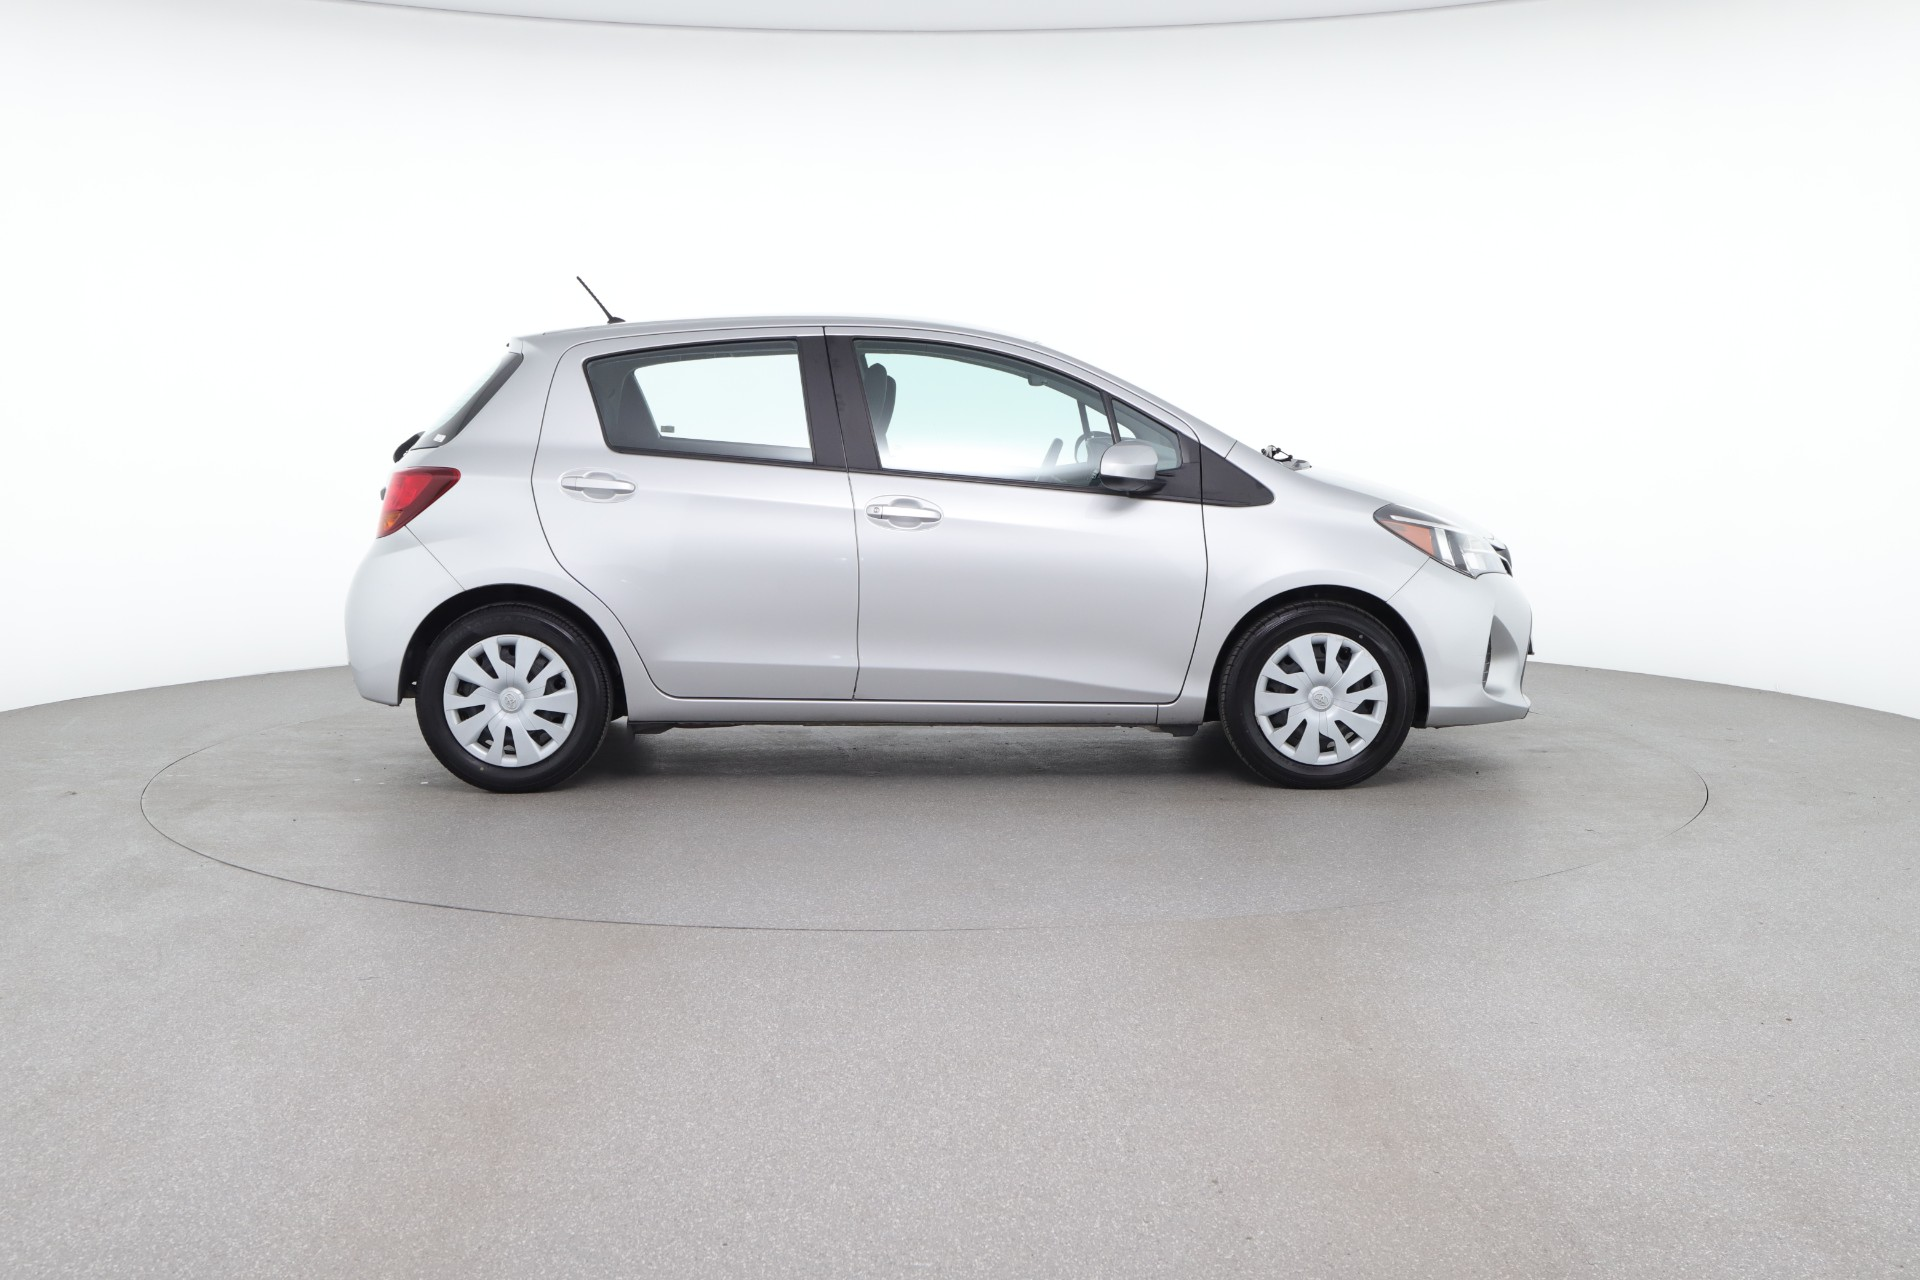 Toyota Yaris: a Big Review for a Small Car